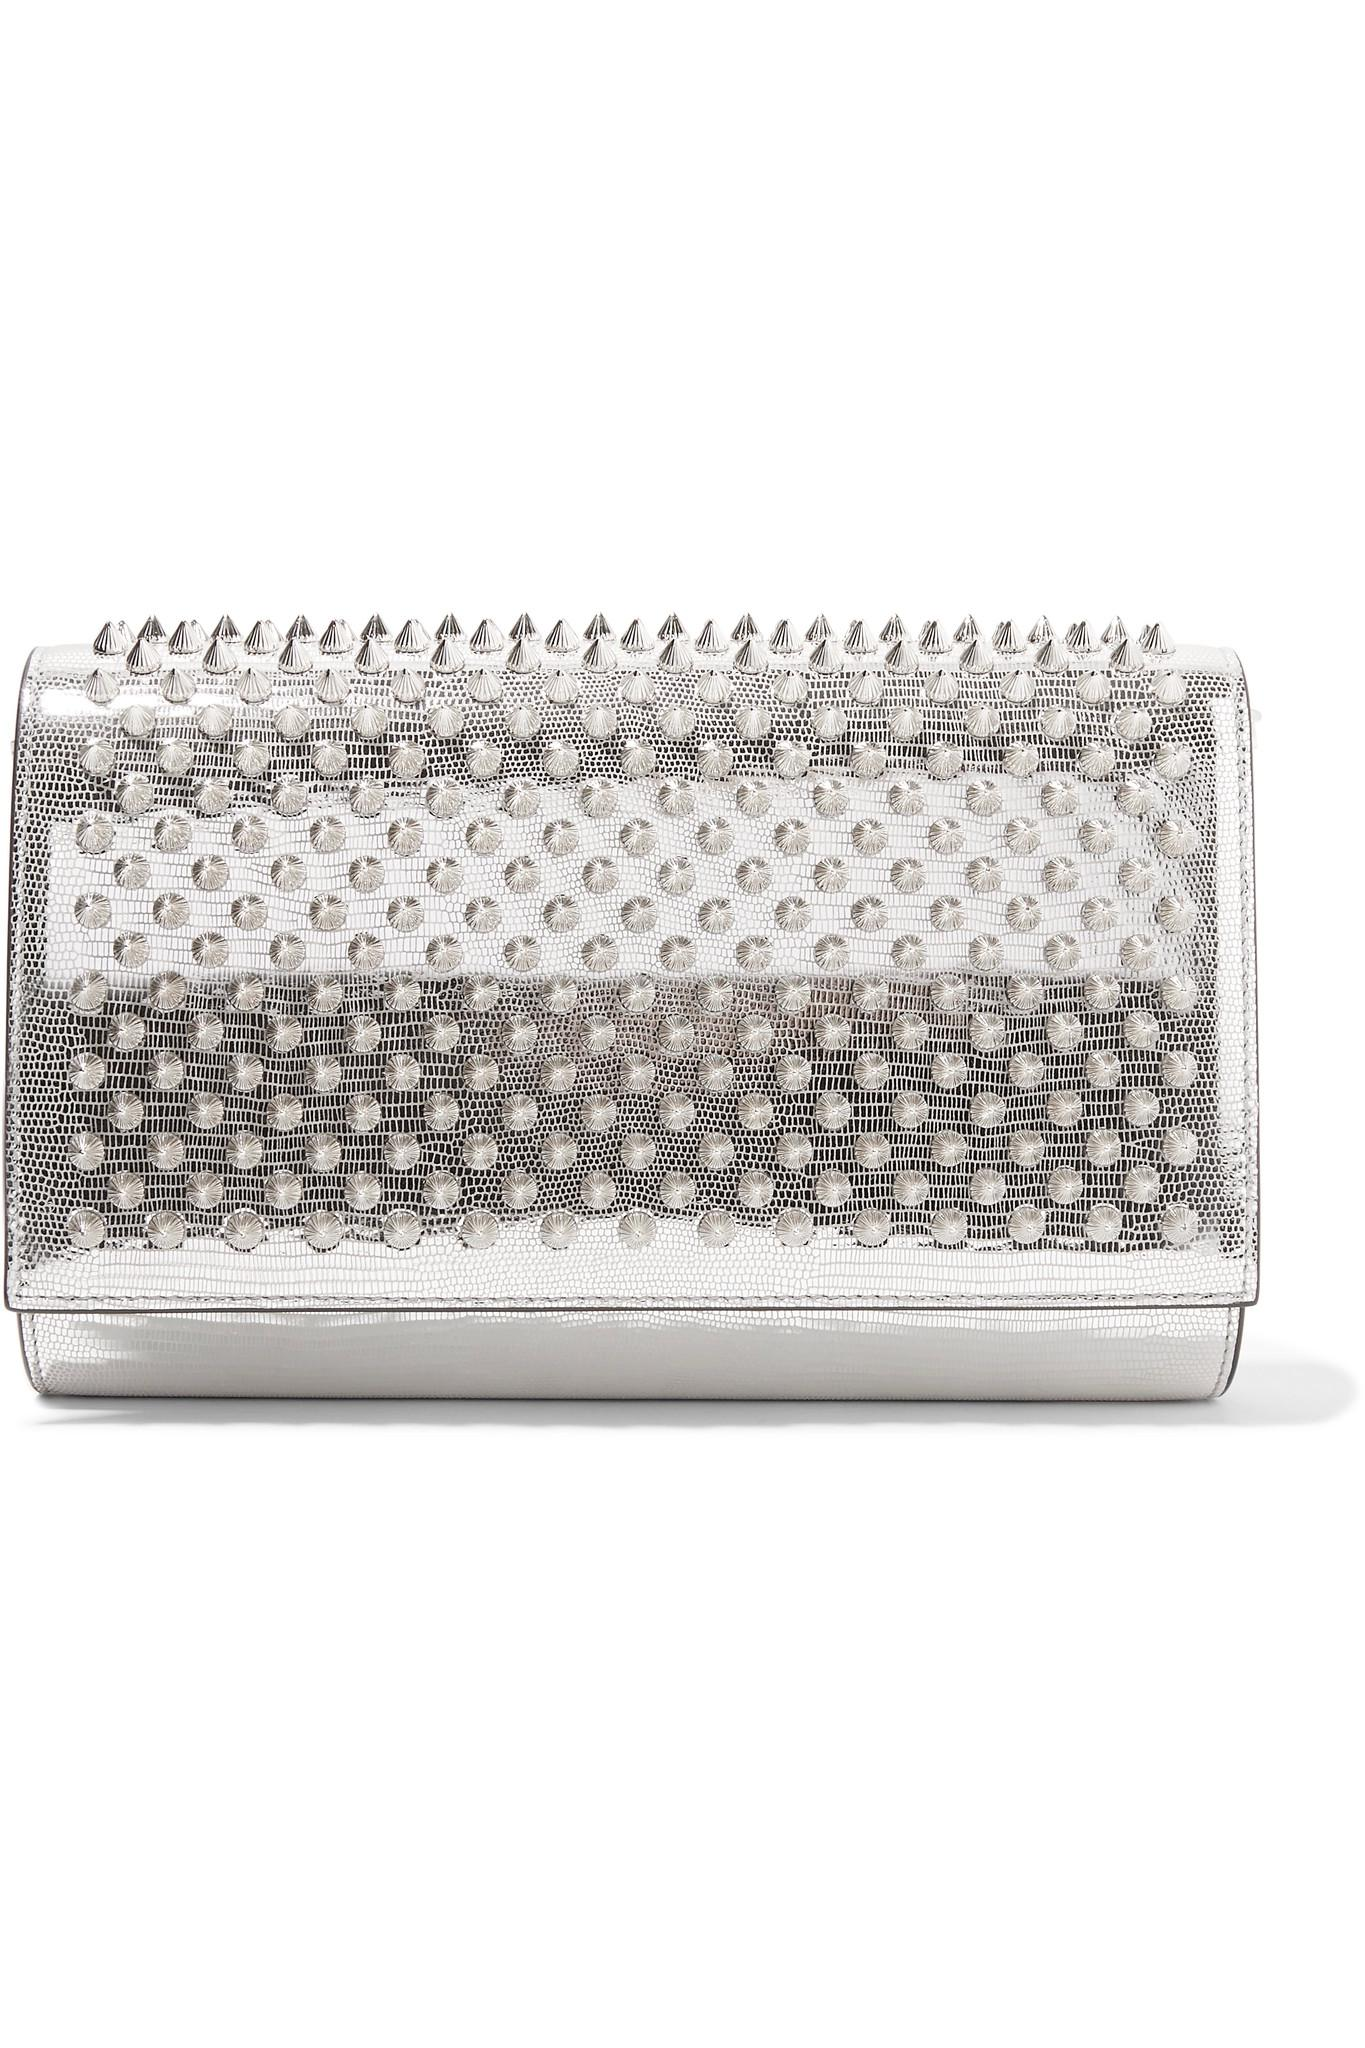 Christian Louboutin Paloma Spiked Metallic Lizard Effect Leather Clutch